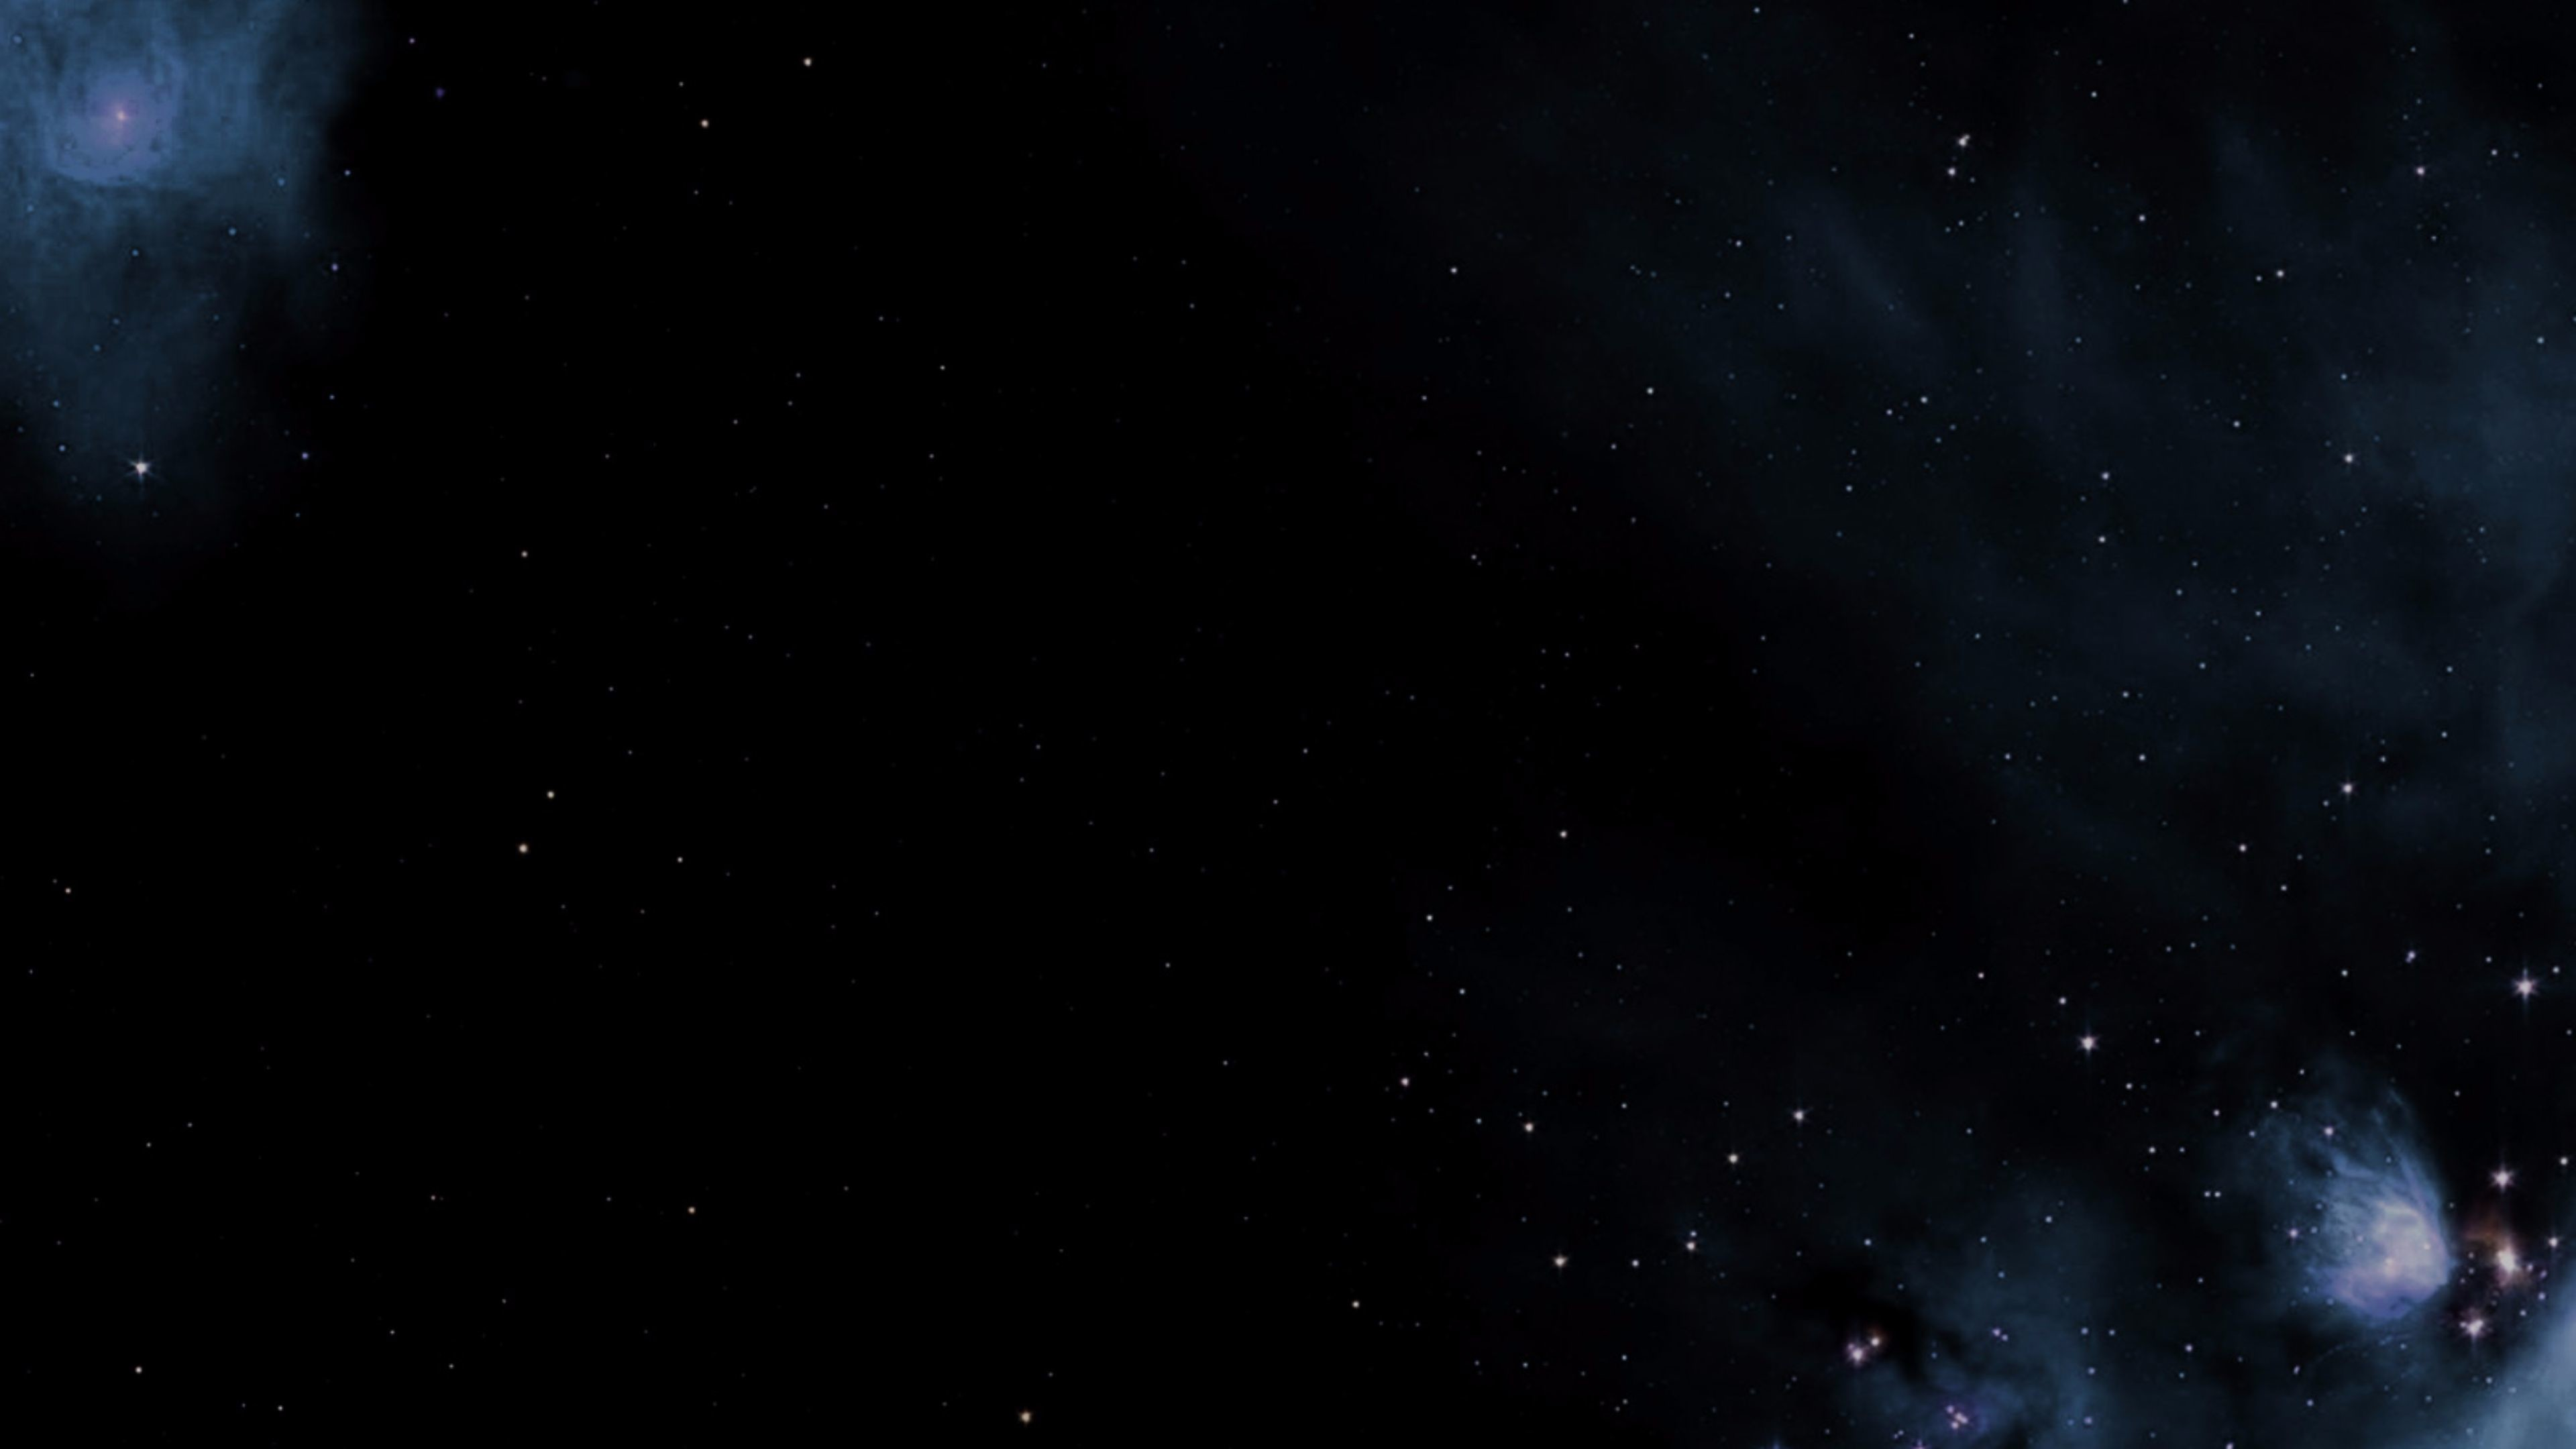 3840x2160 Dark Space Wallpaper Free Download